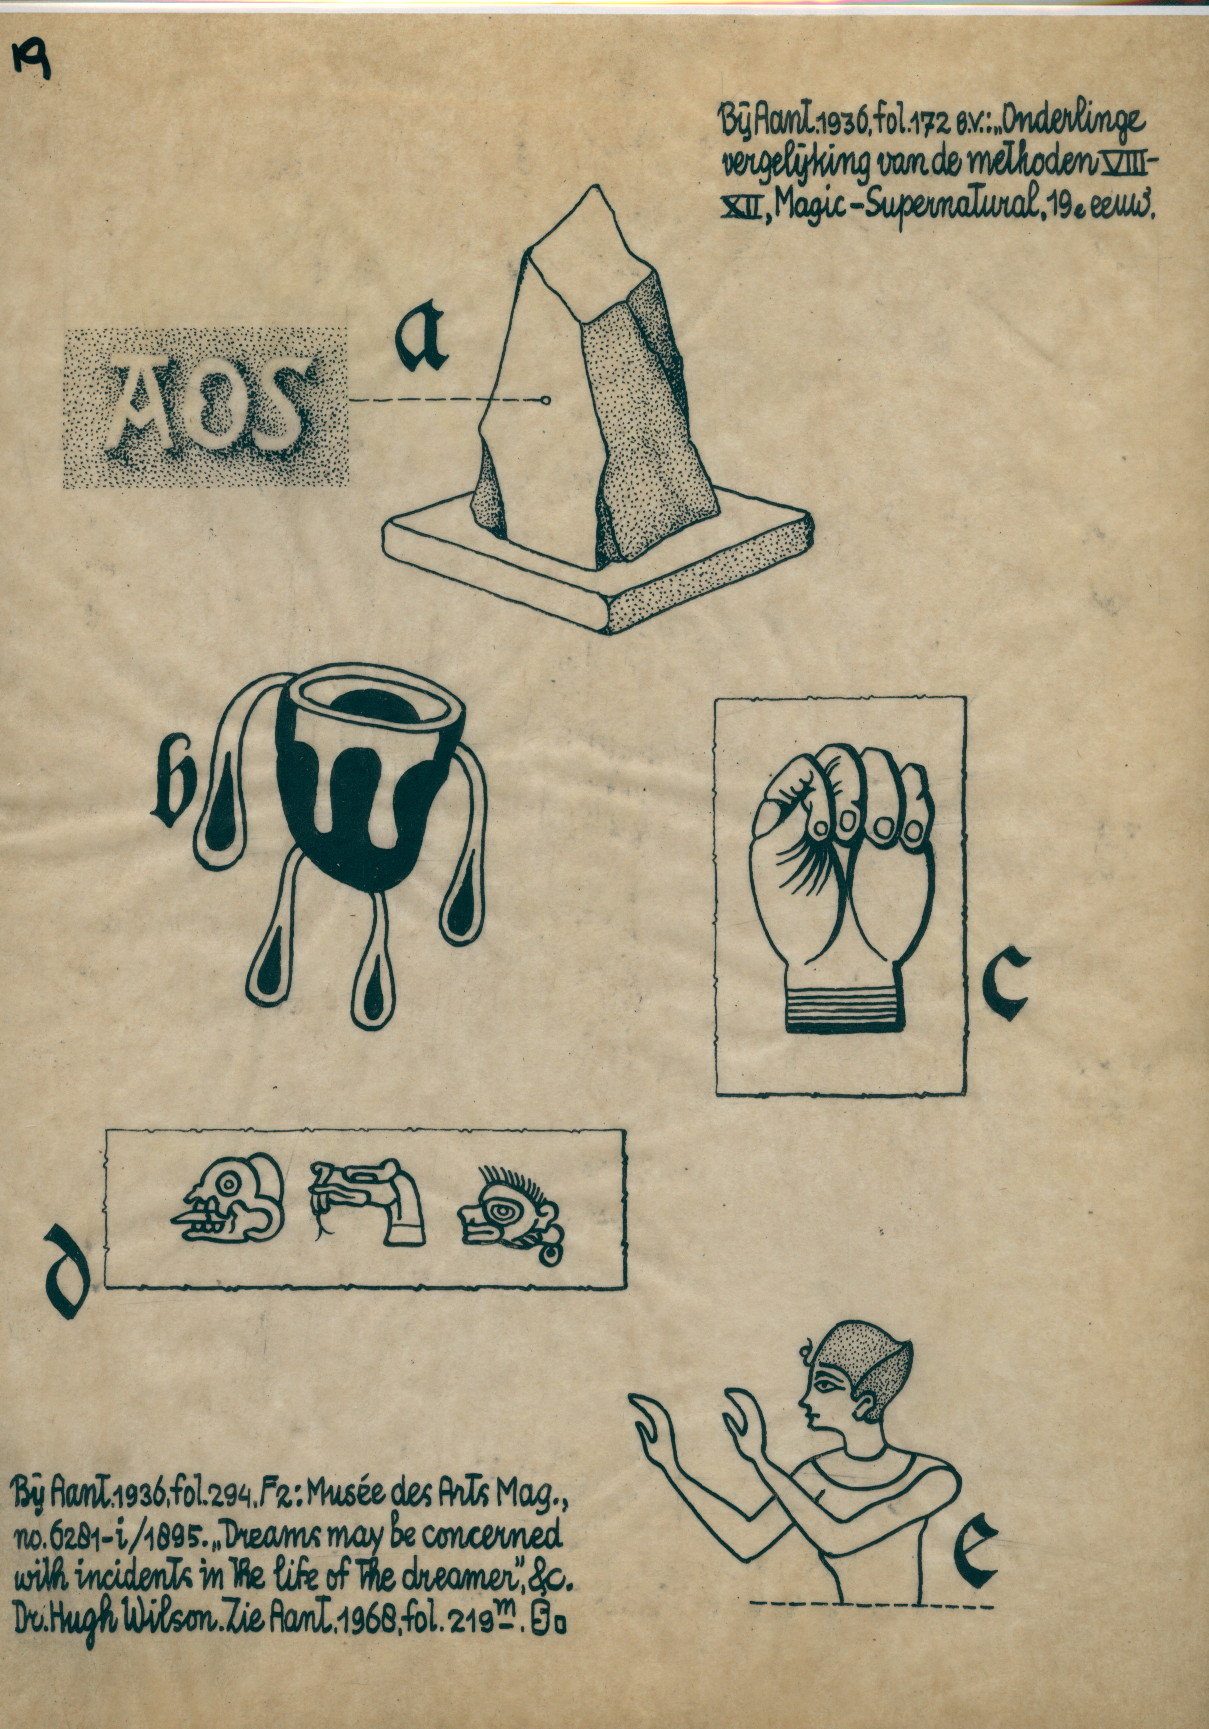 R119 Drawing Of A Rock A Fist An Egyptian Mayan Symbols And